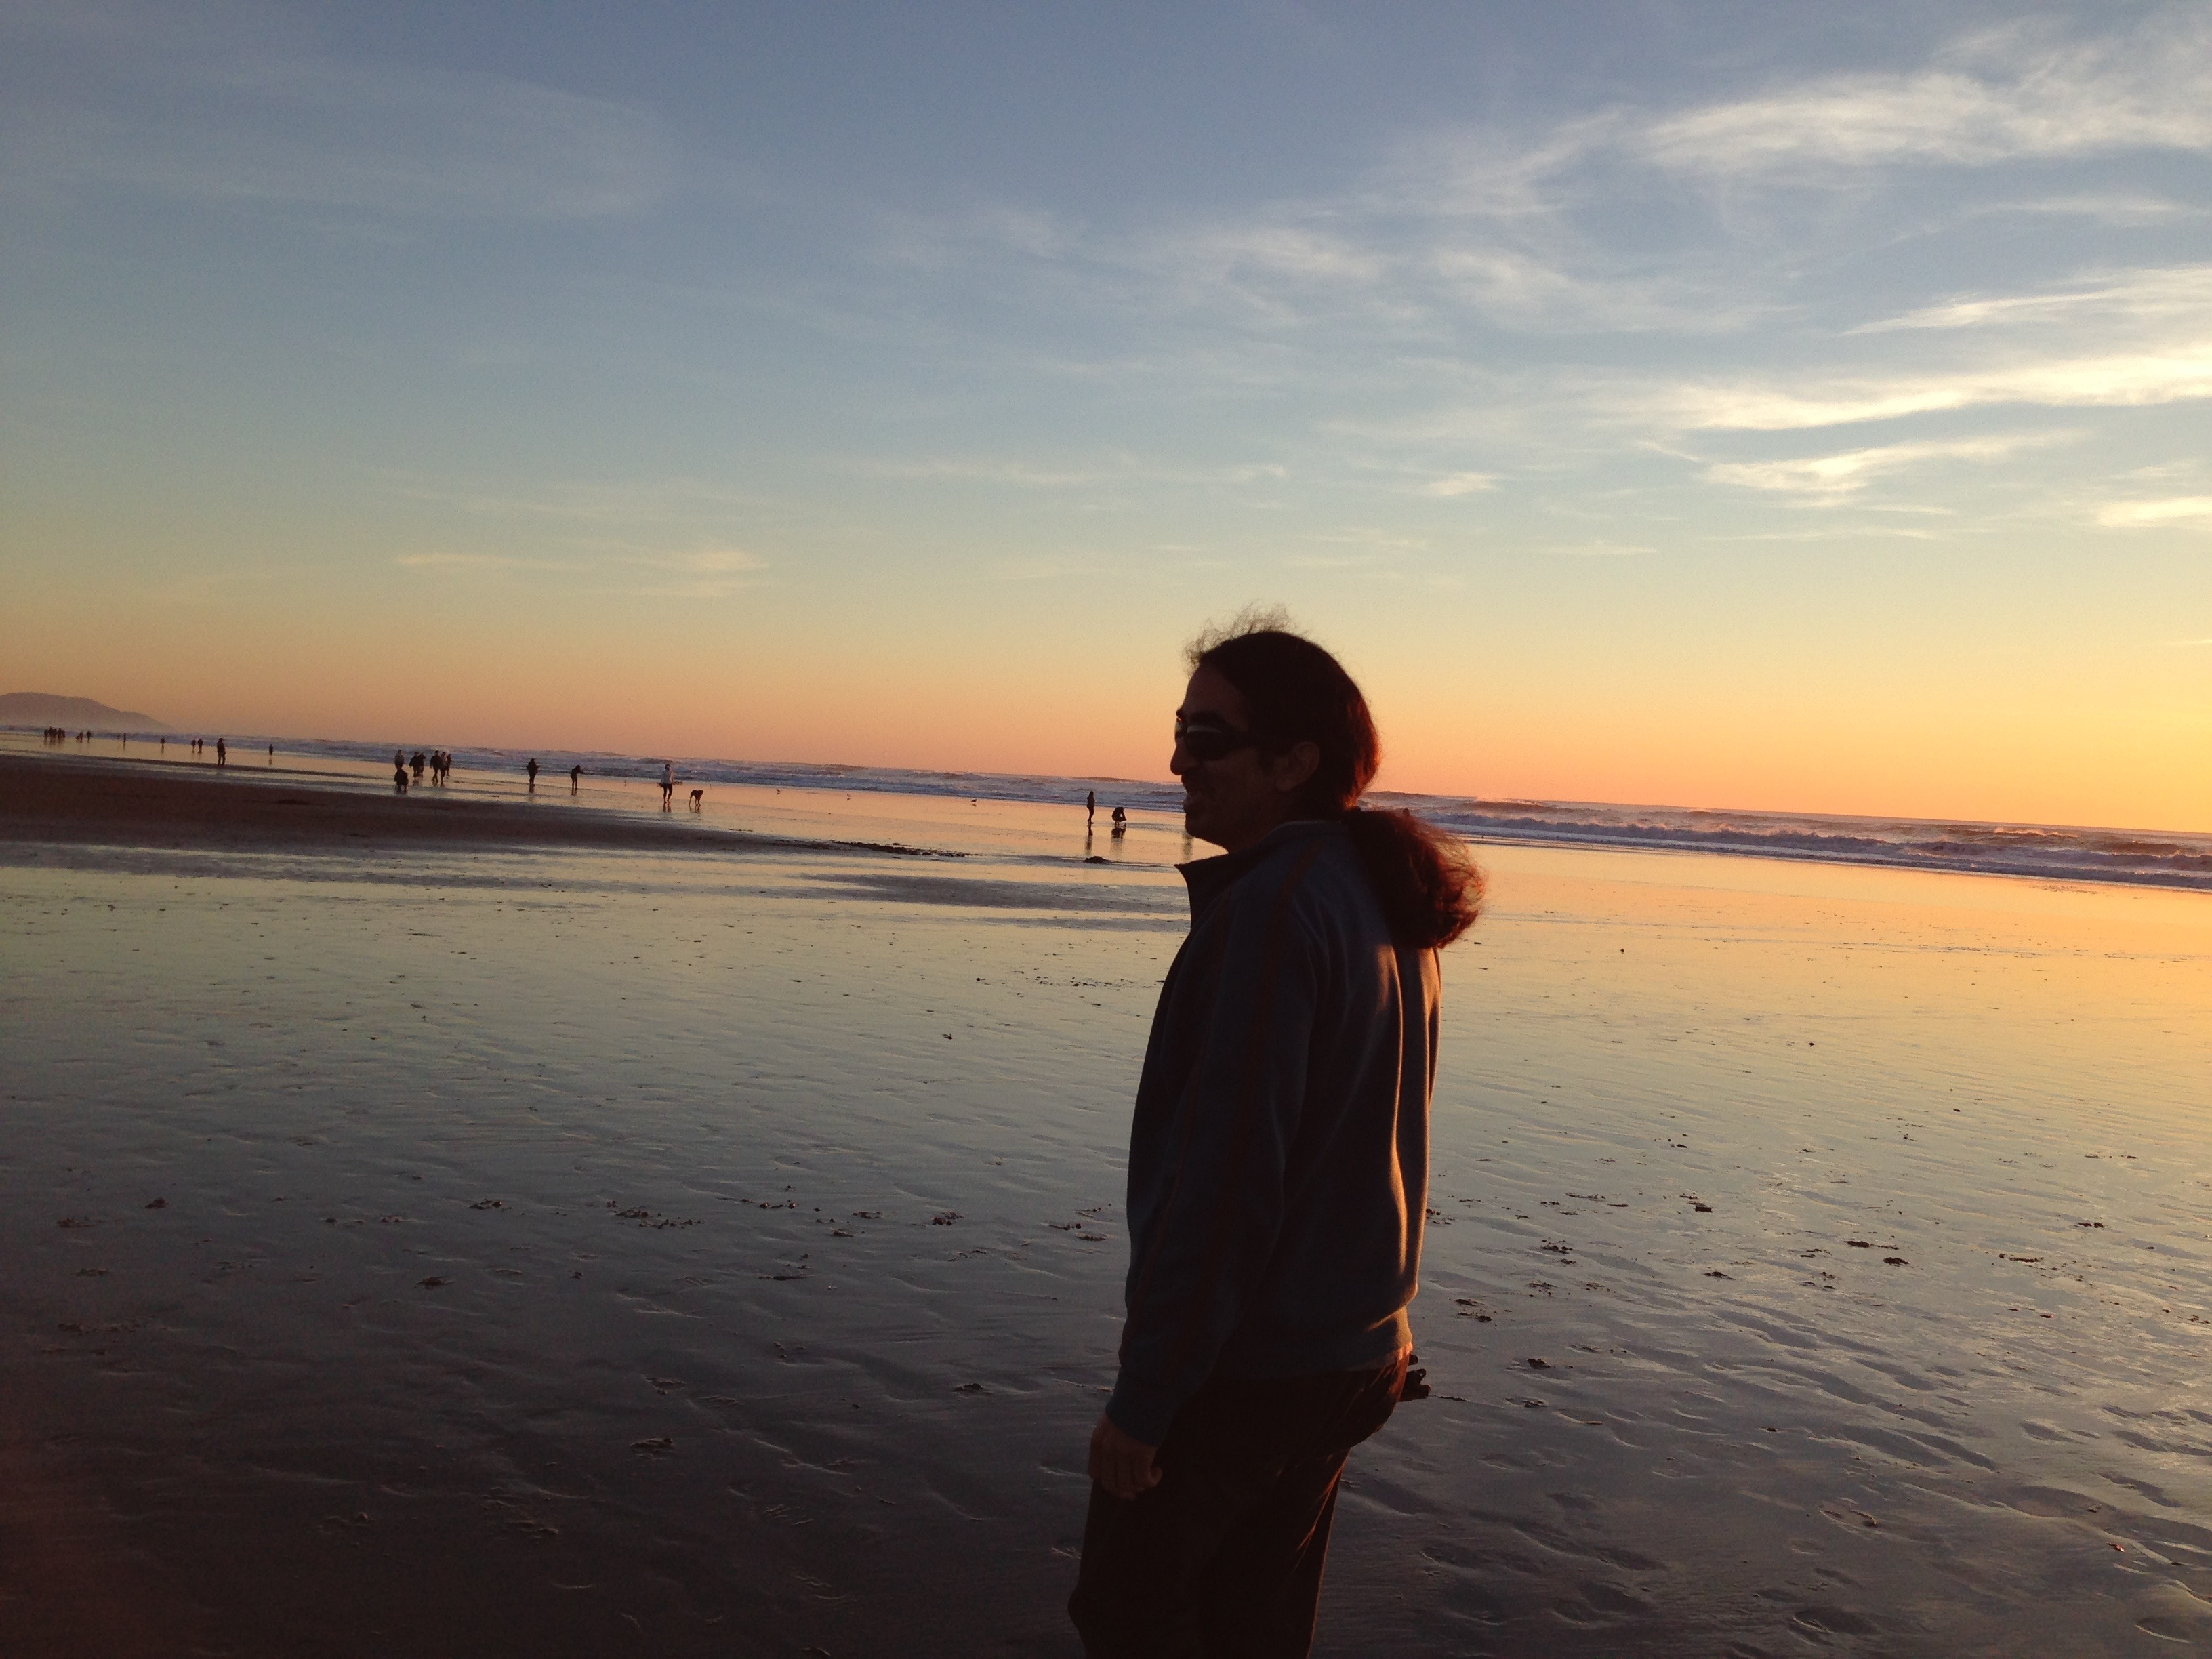 Ahmet is standing on the beach with sunset in the background